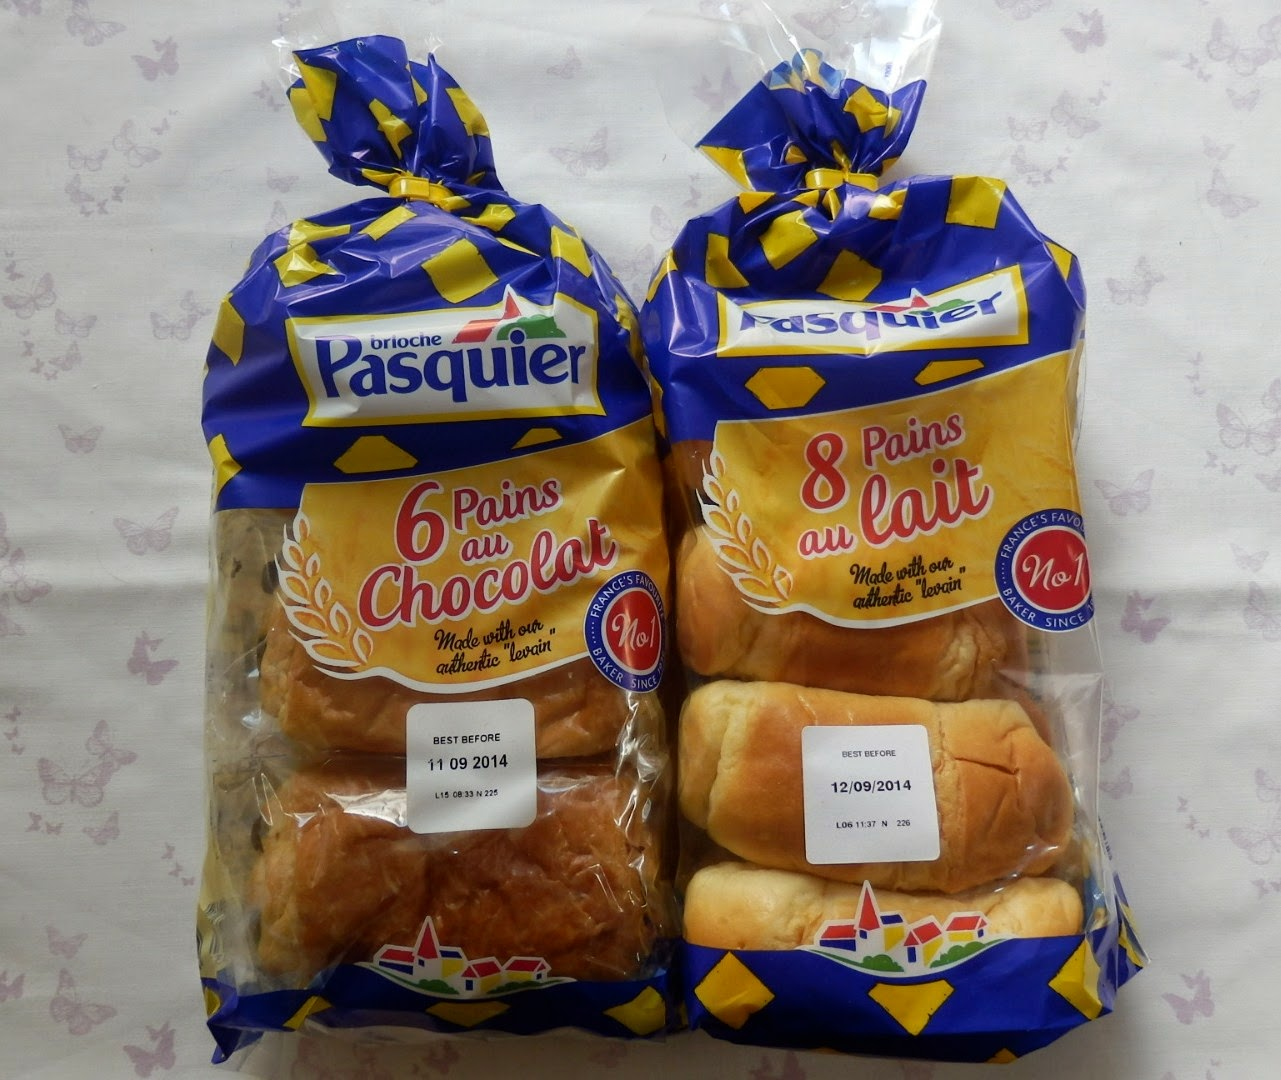 Degustabox Review - August 2014 Brioche Pasquier Pain au Lait (8pack) and Pain au Chocolat (6pack)